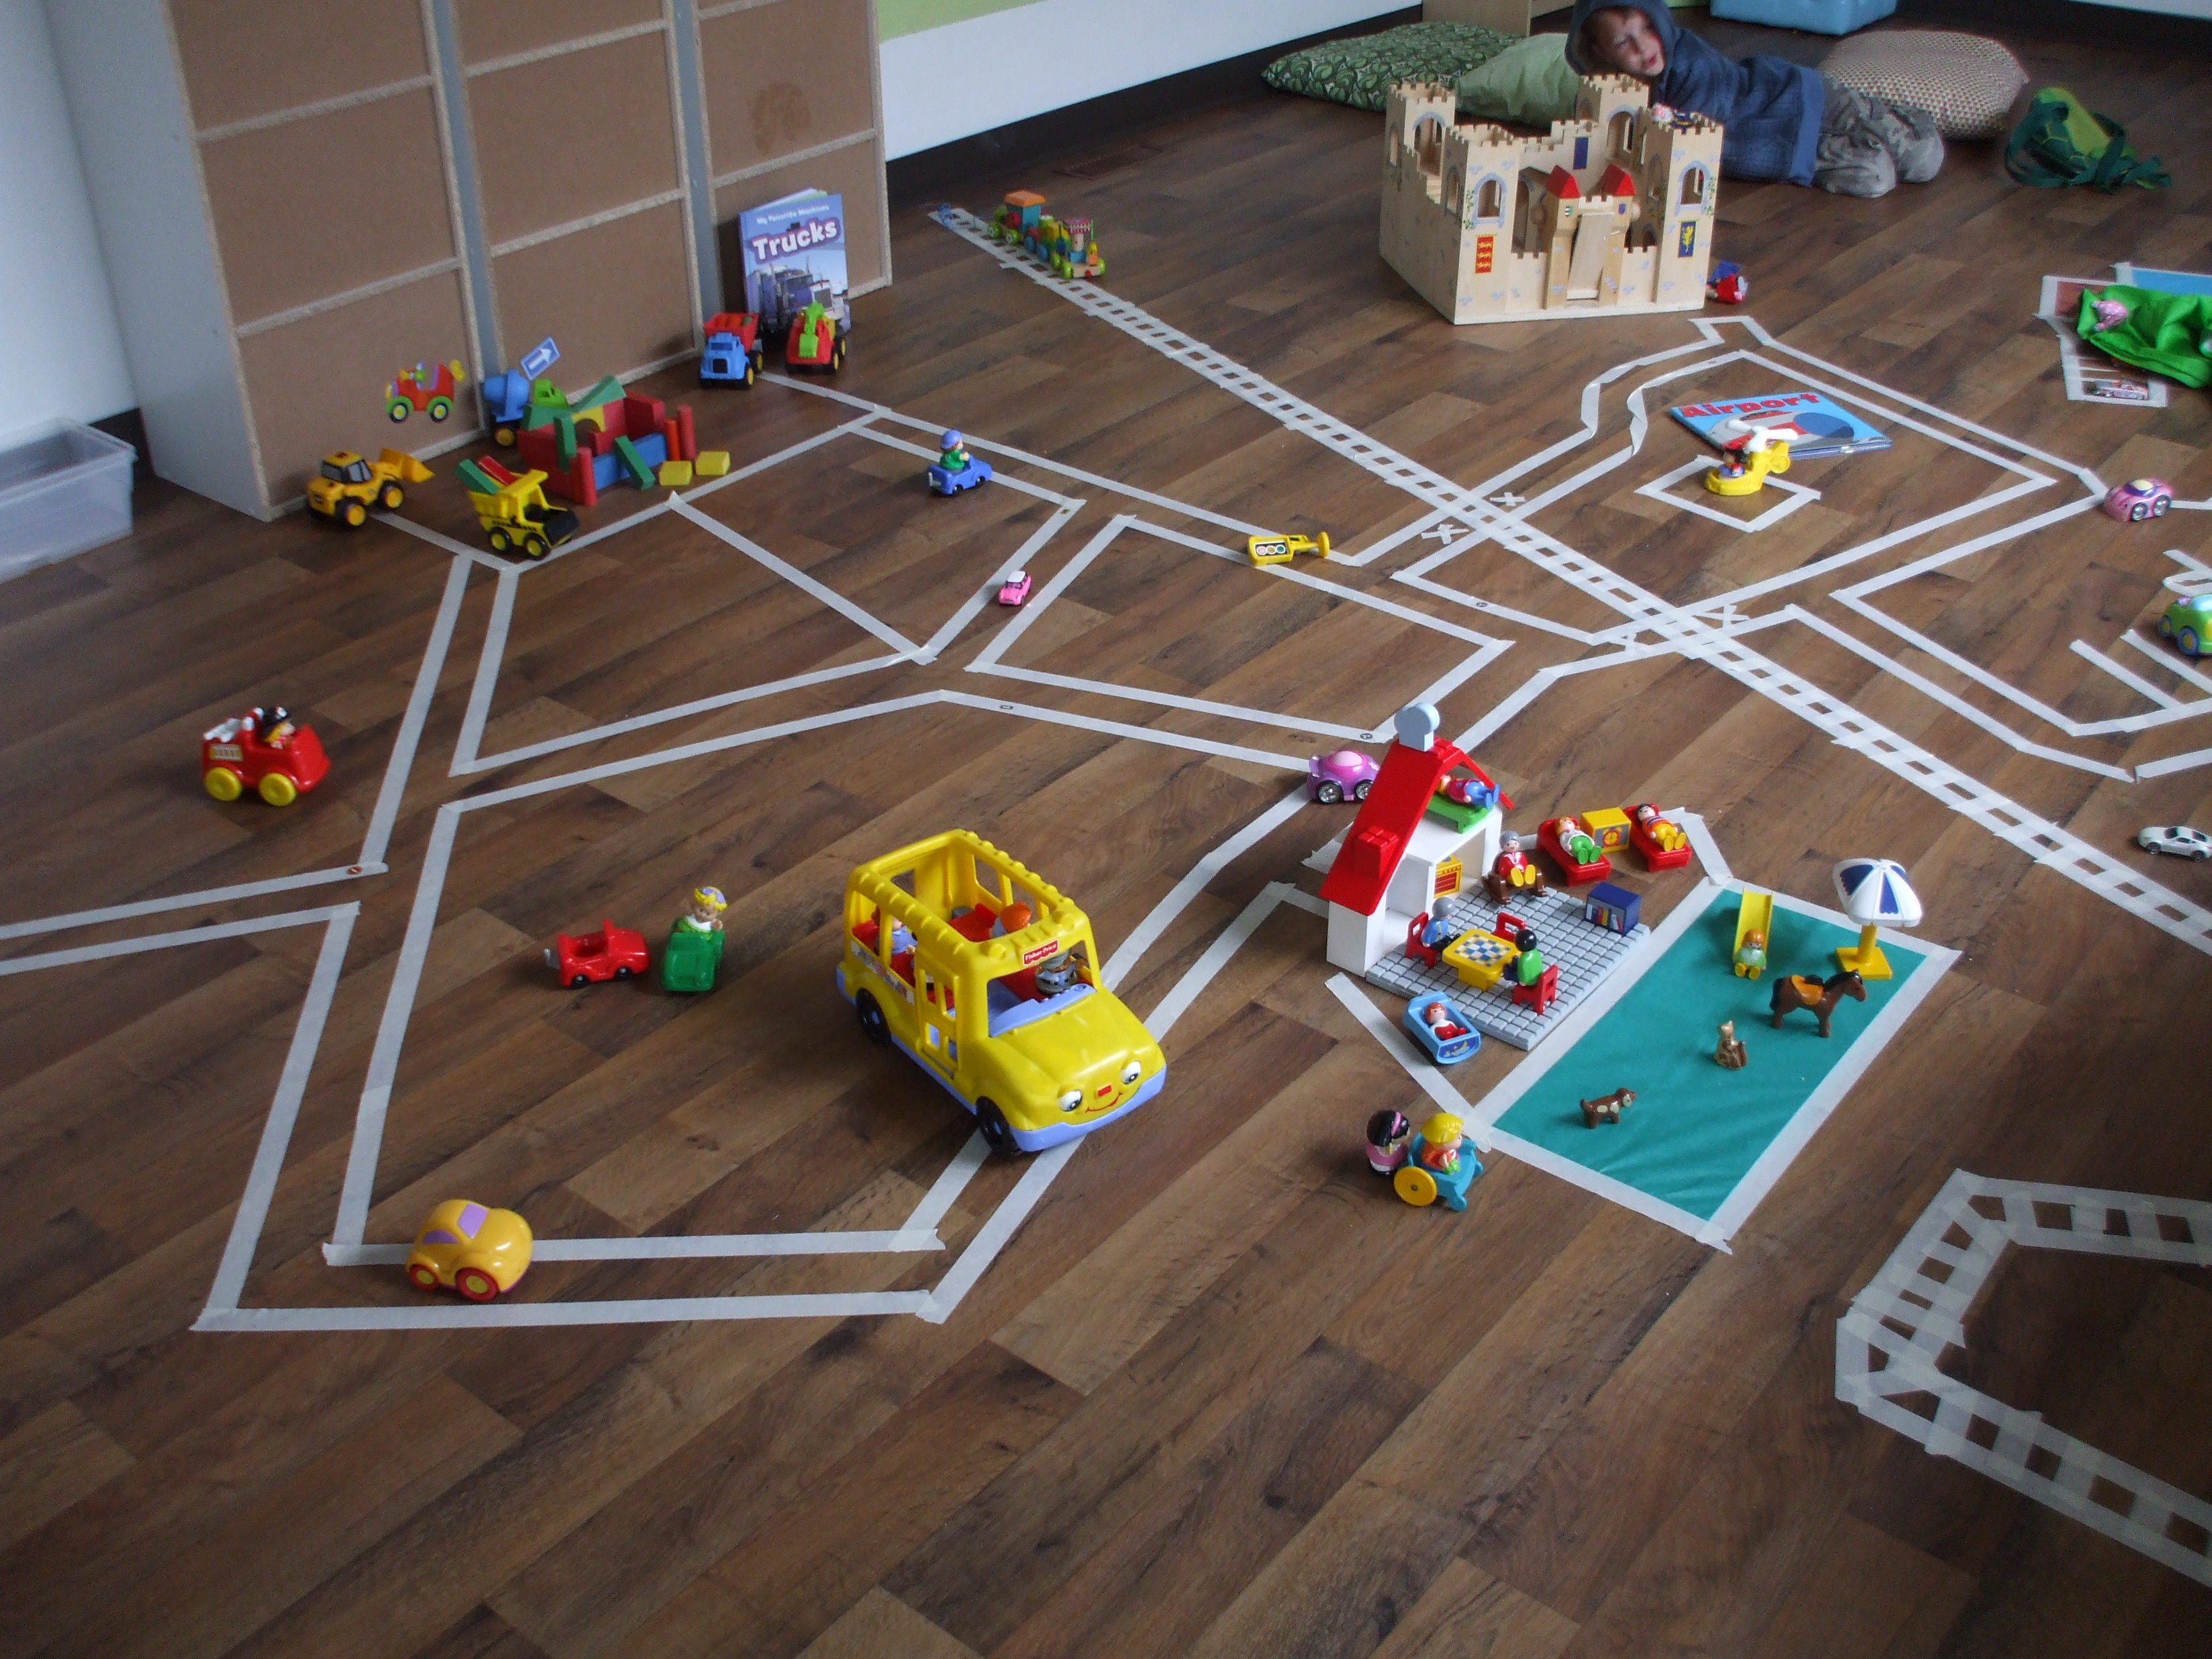 awsome at home activities for under 200